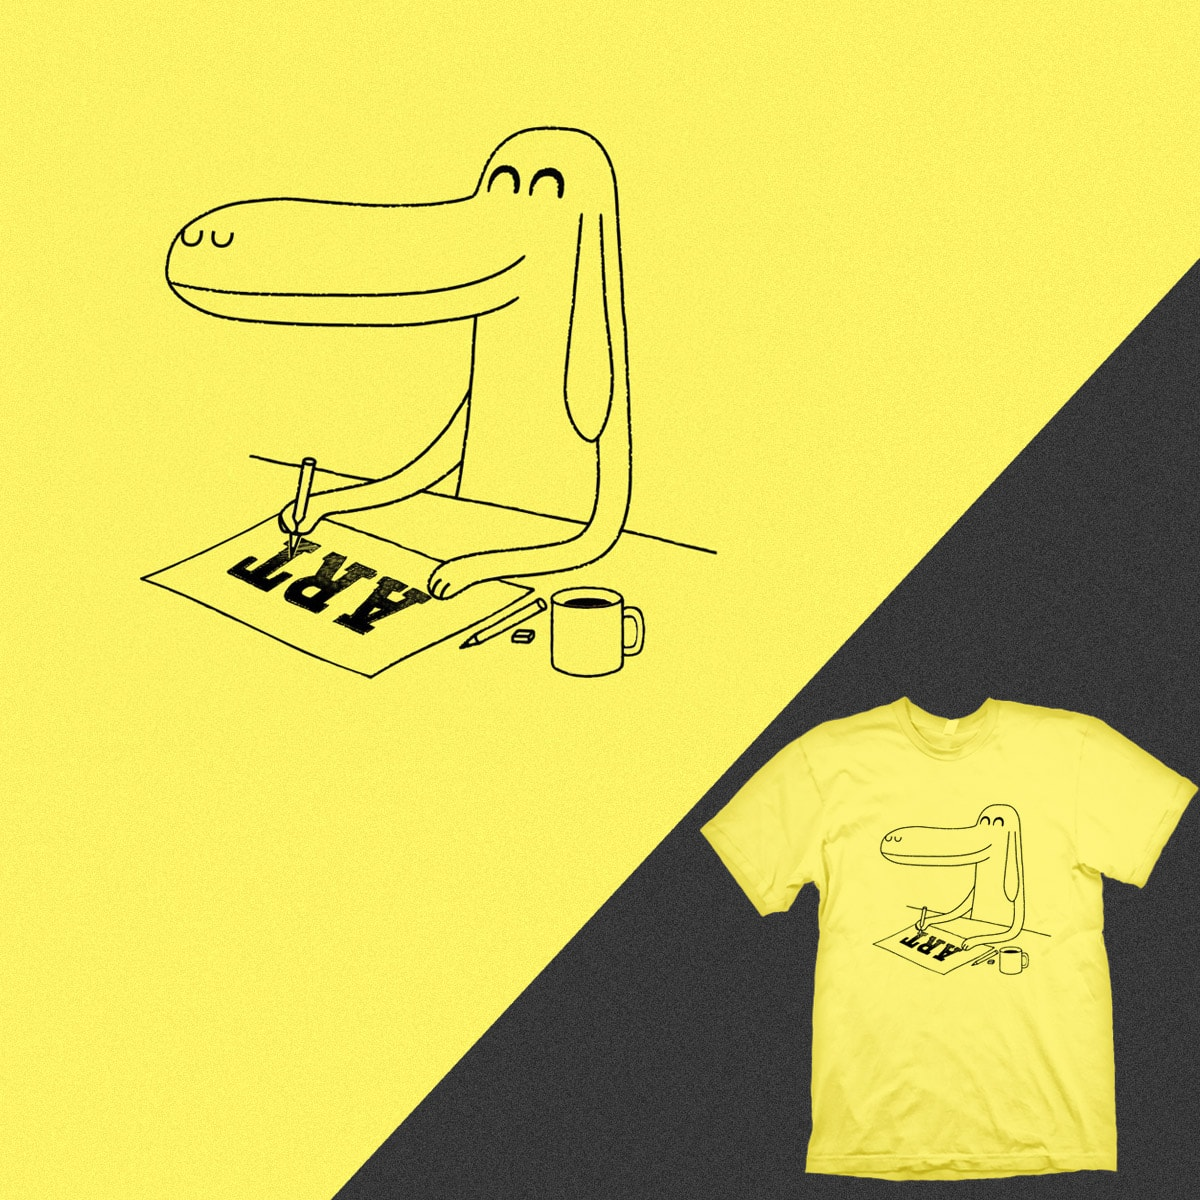 My Design is Anderdawg by kuli_grafis on Threadless